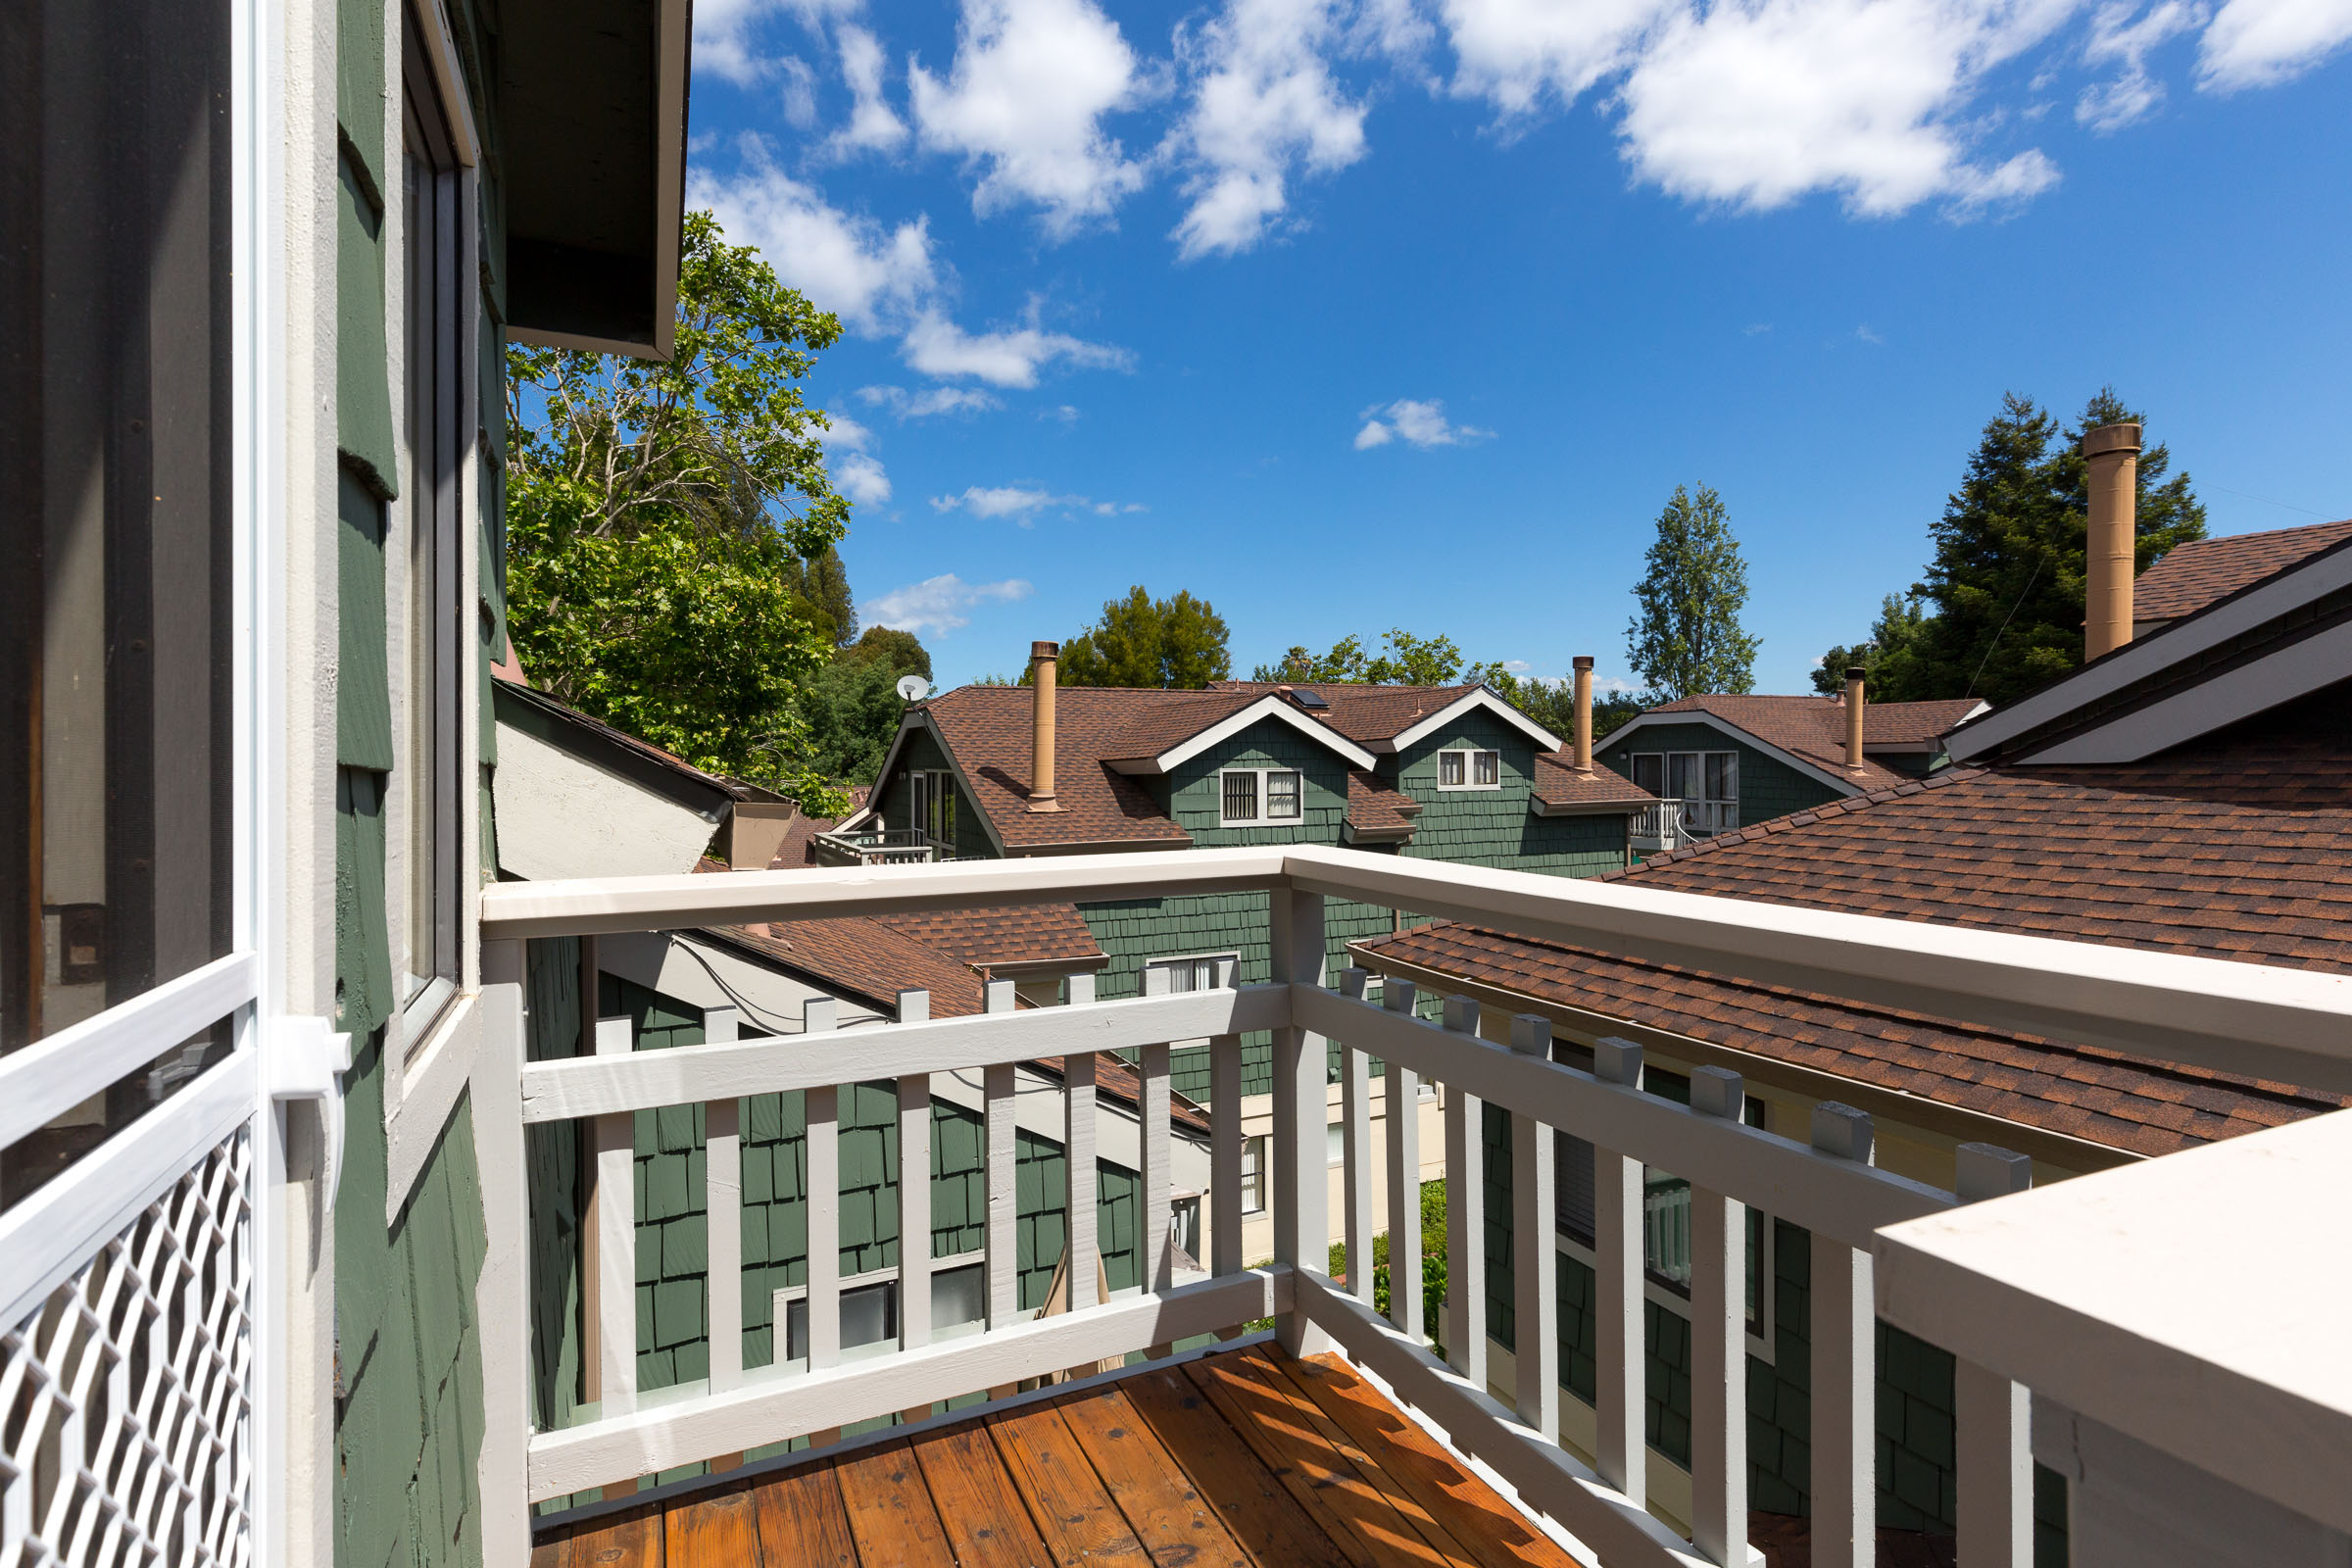 Sunny and bright 2 bedroom townhouse on the eastside of Santa Cruz. Remodeled kitchen, vaulted ceilings, hardwood floors, and in-unit washer and dryer.  Presented by Sam Bird-Robinson, Realtor.